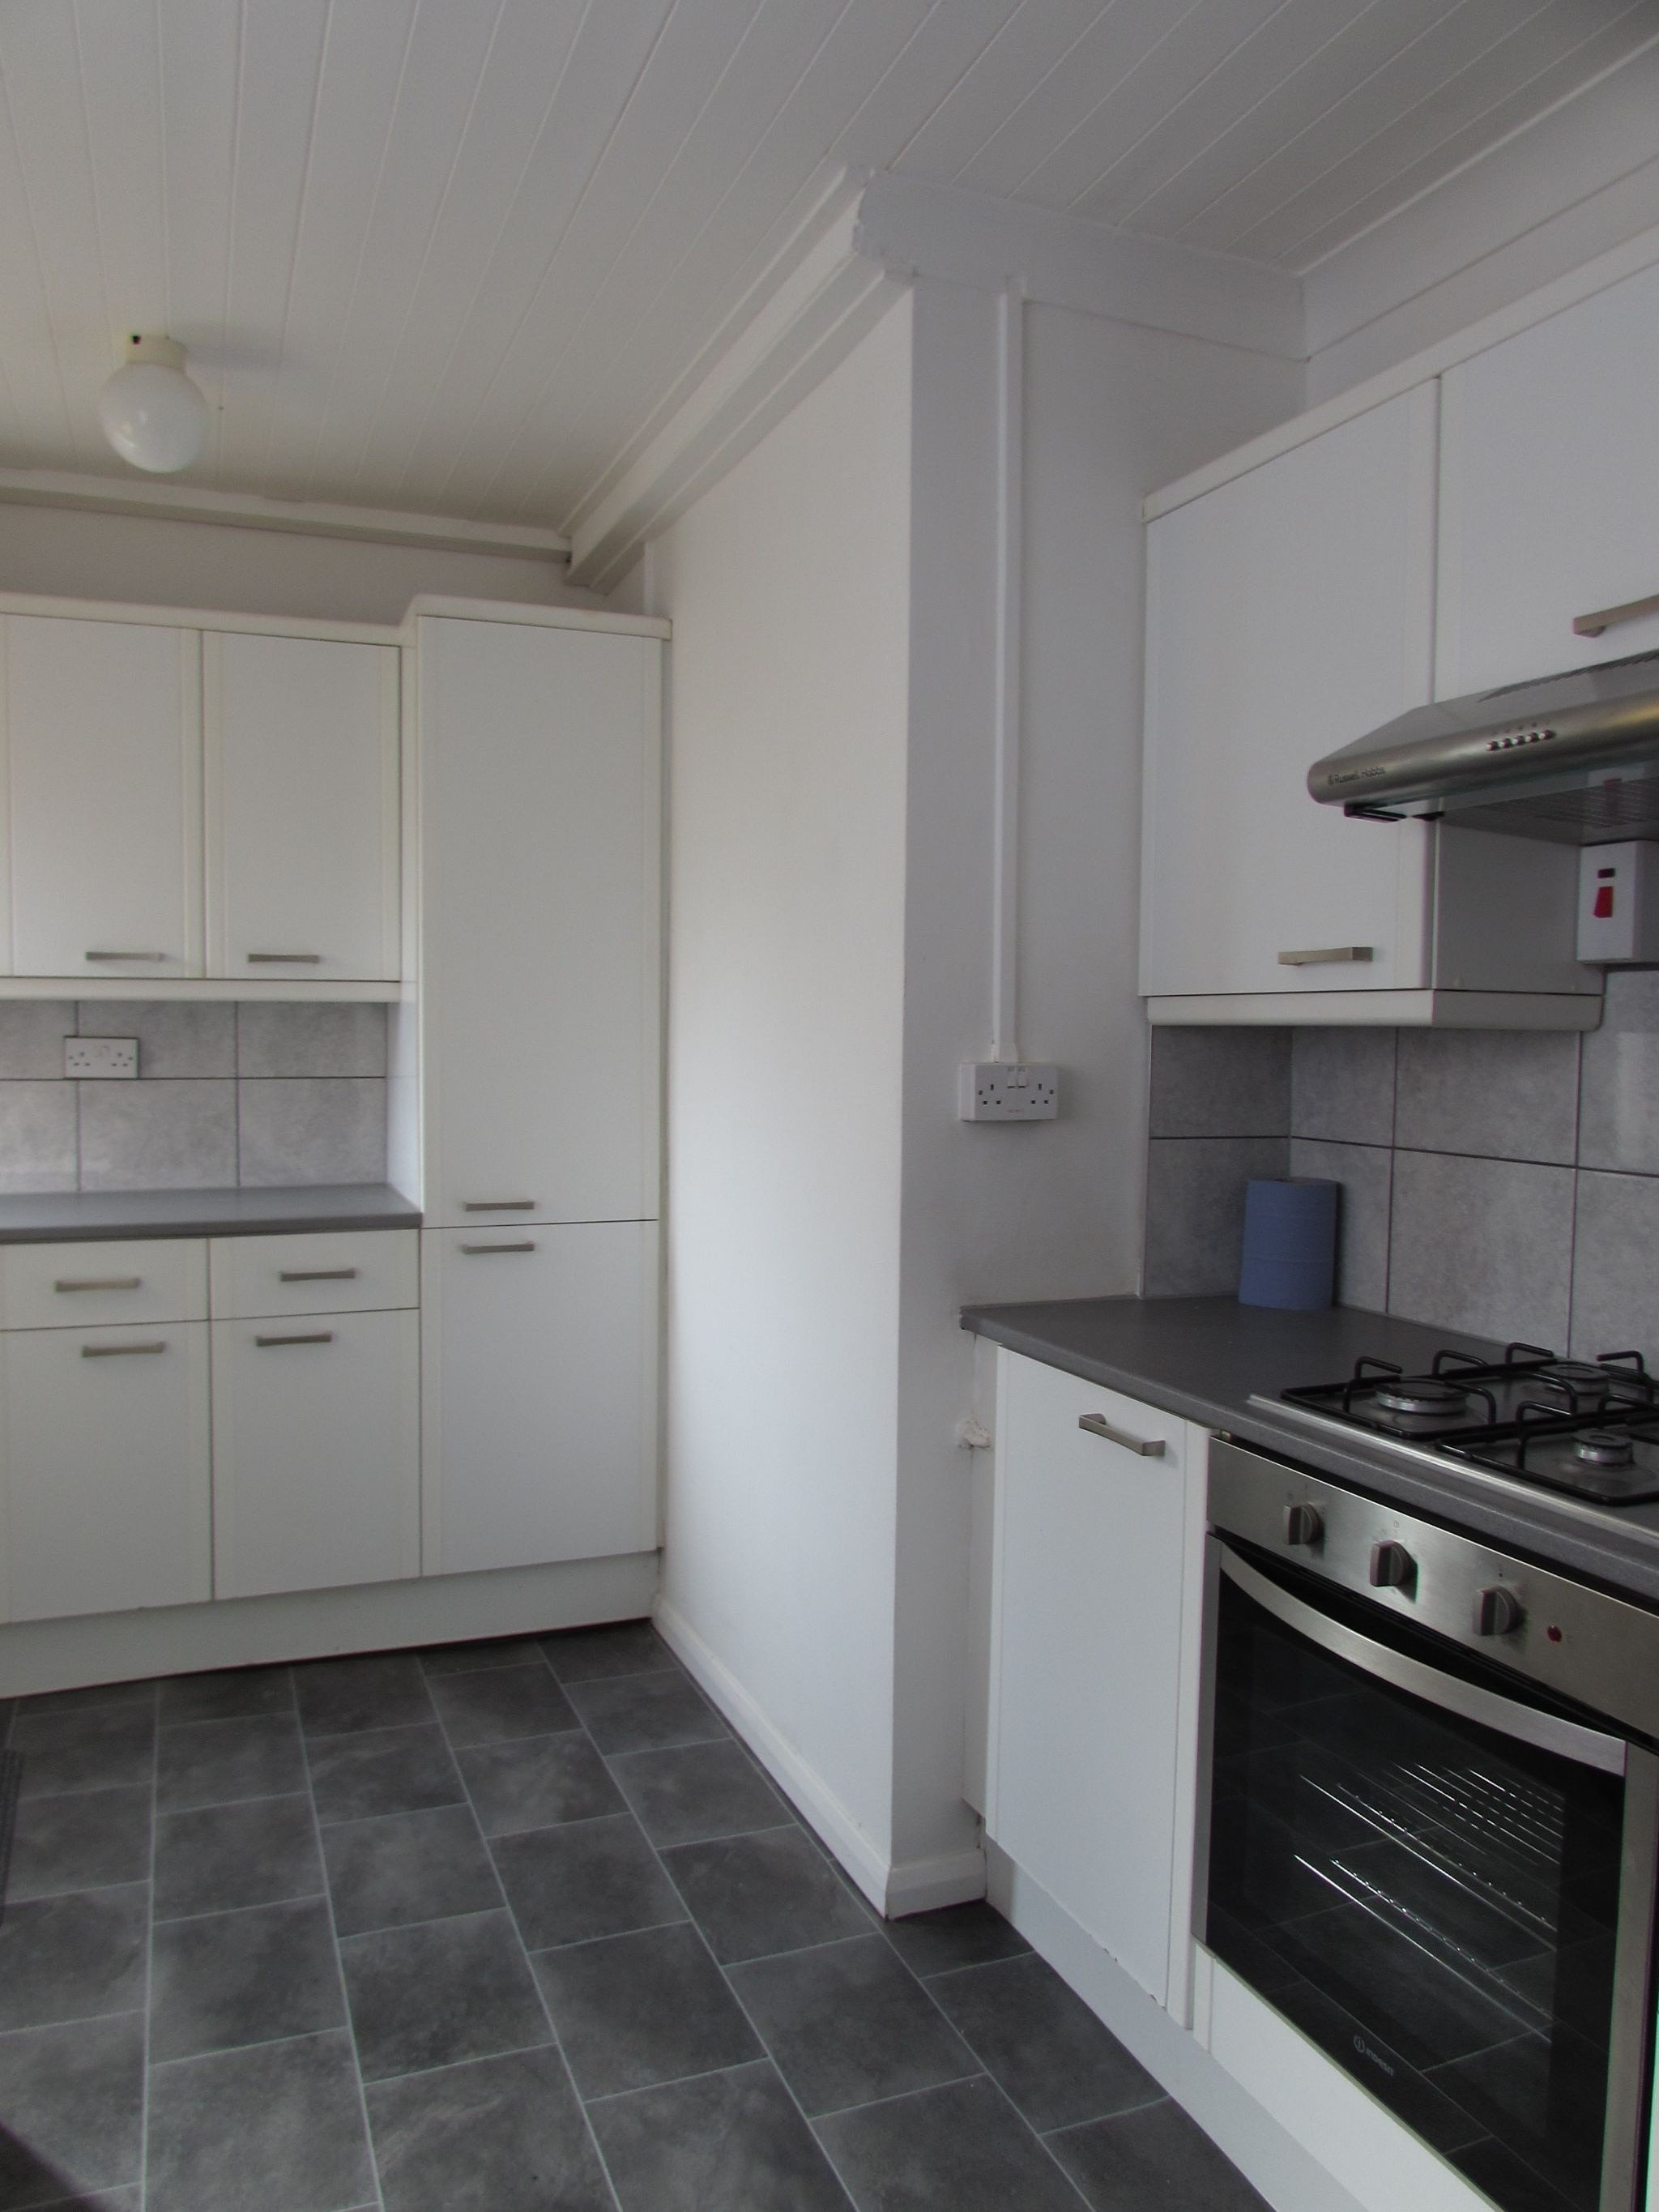 2 Bedroom Ground Floor Flat/apartment To Rent - Photograph 7